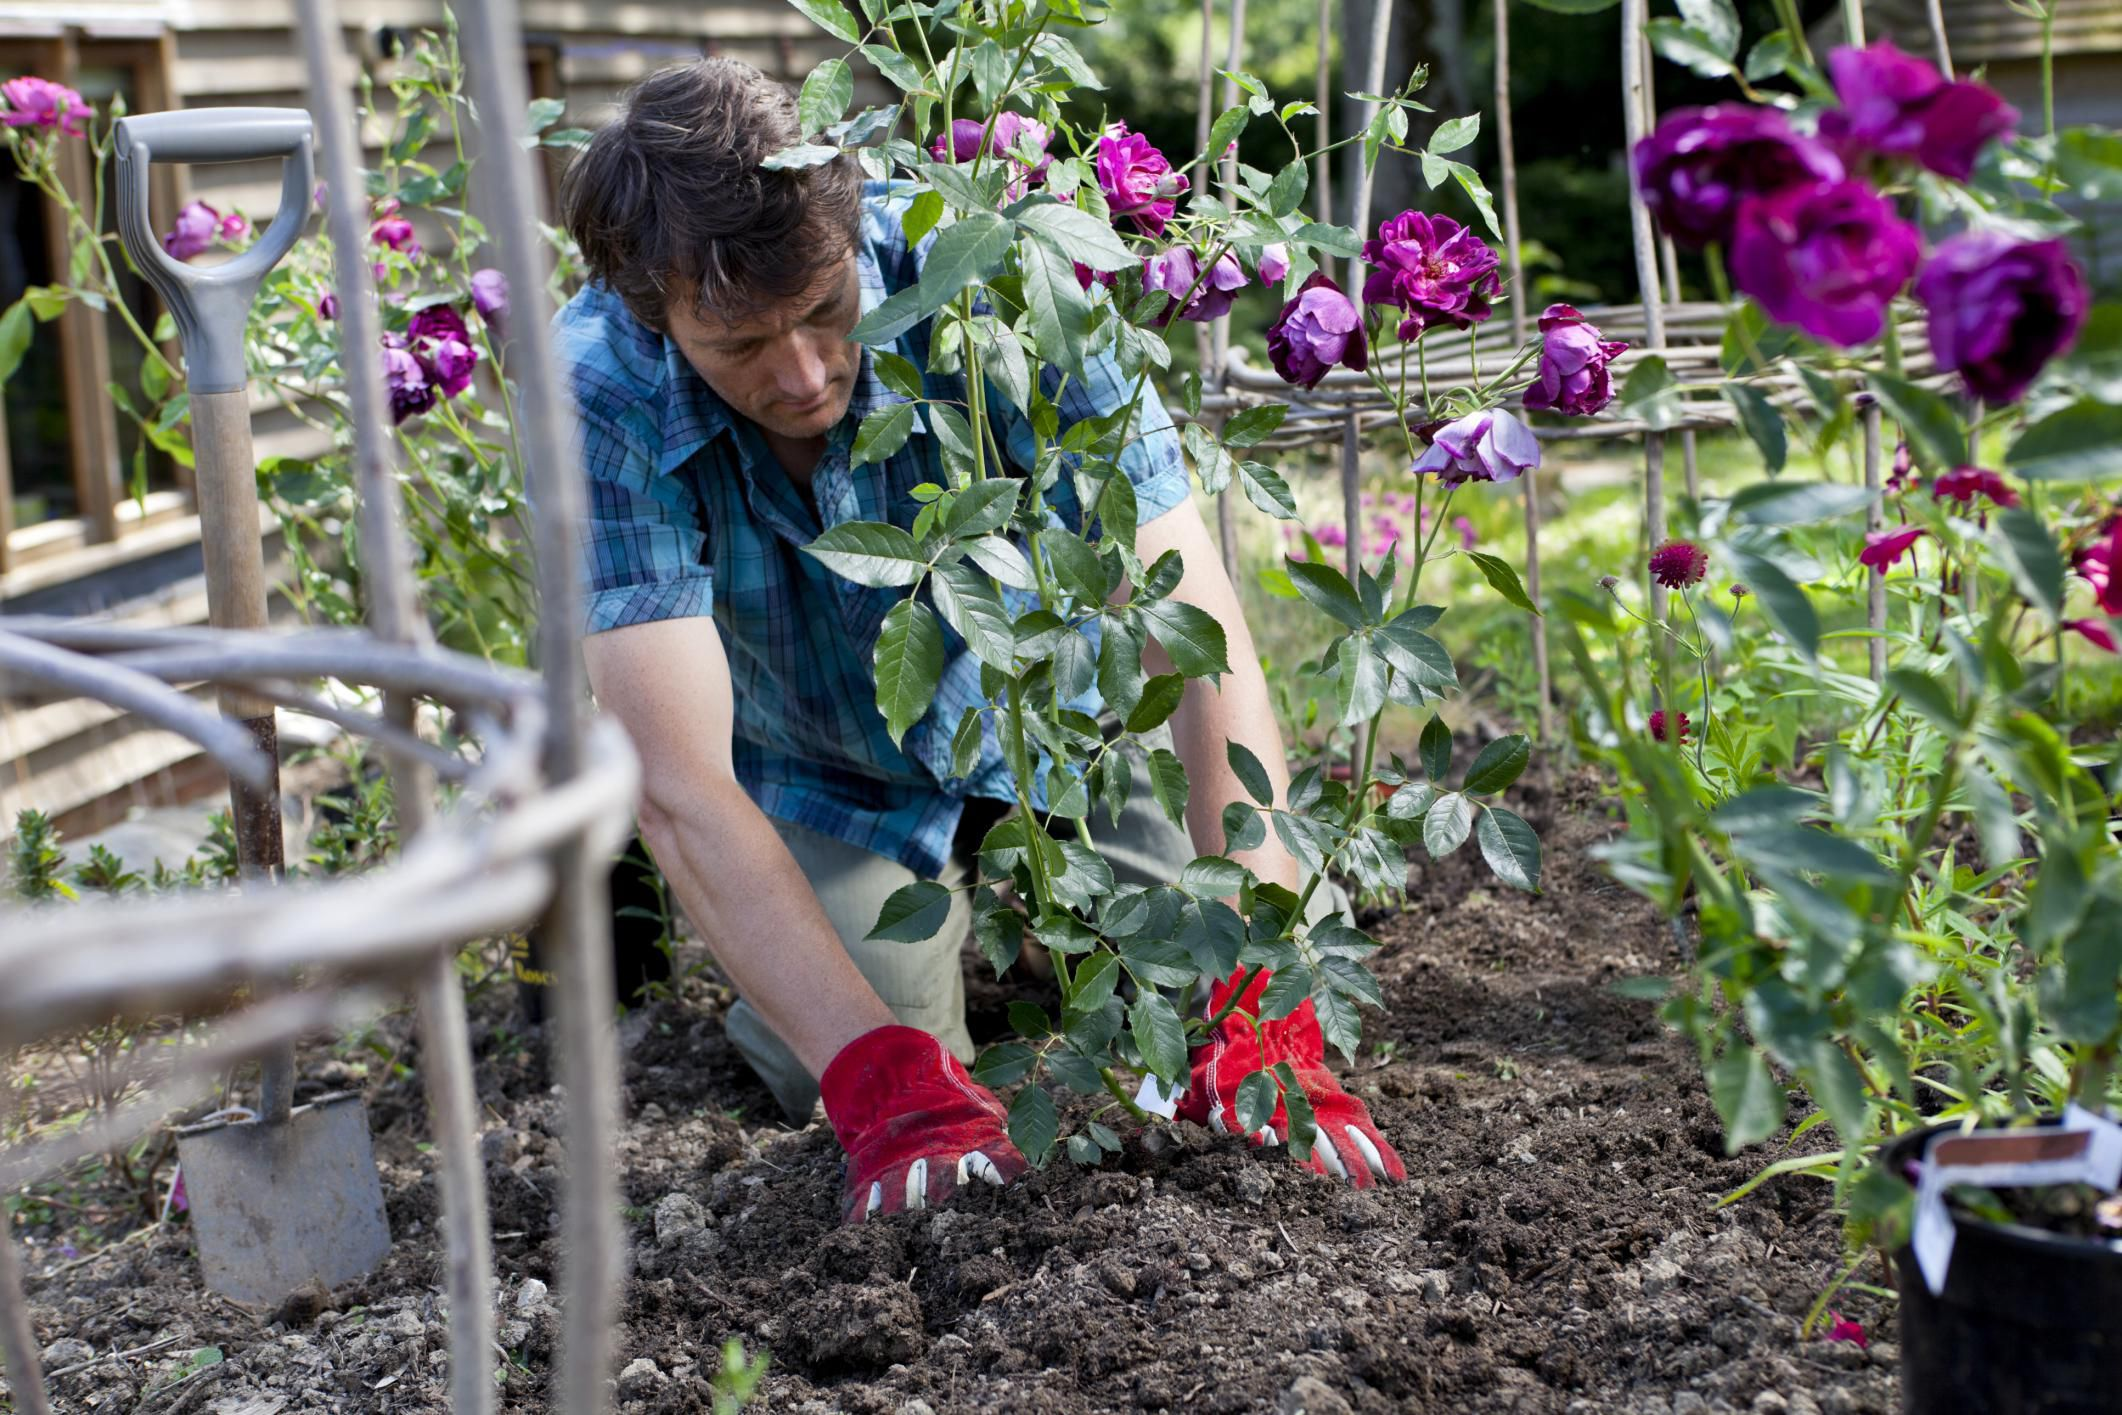 Roses In Garden: Preparing Garden Soil For Growing Roses